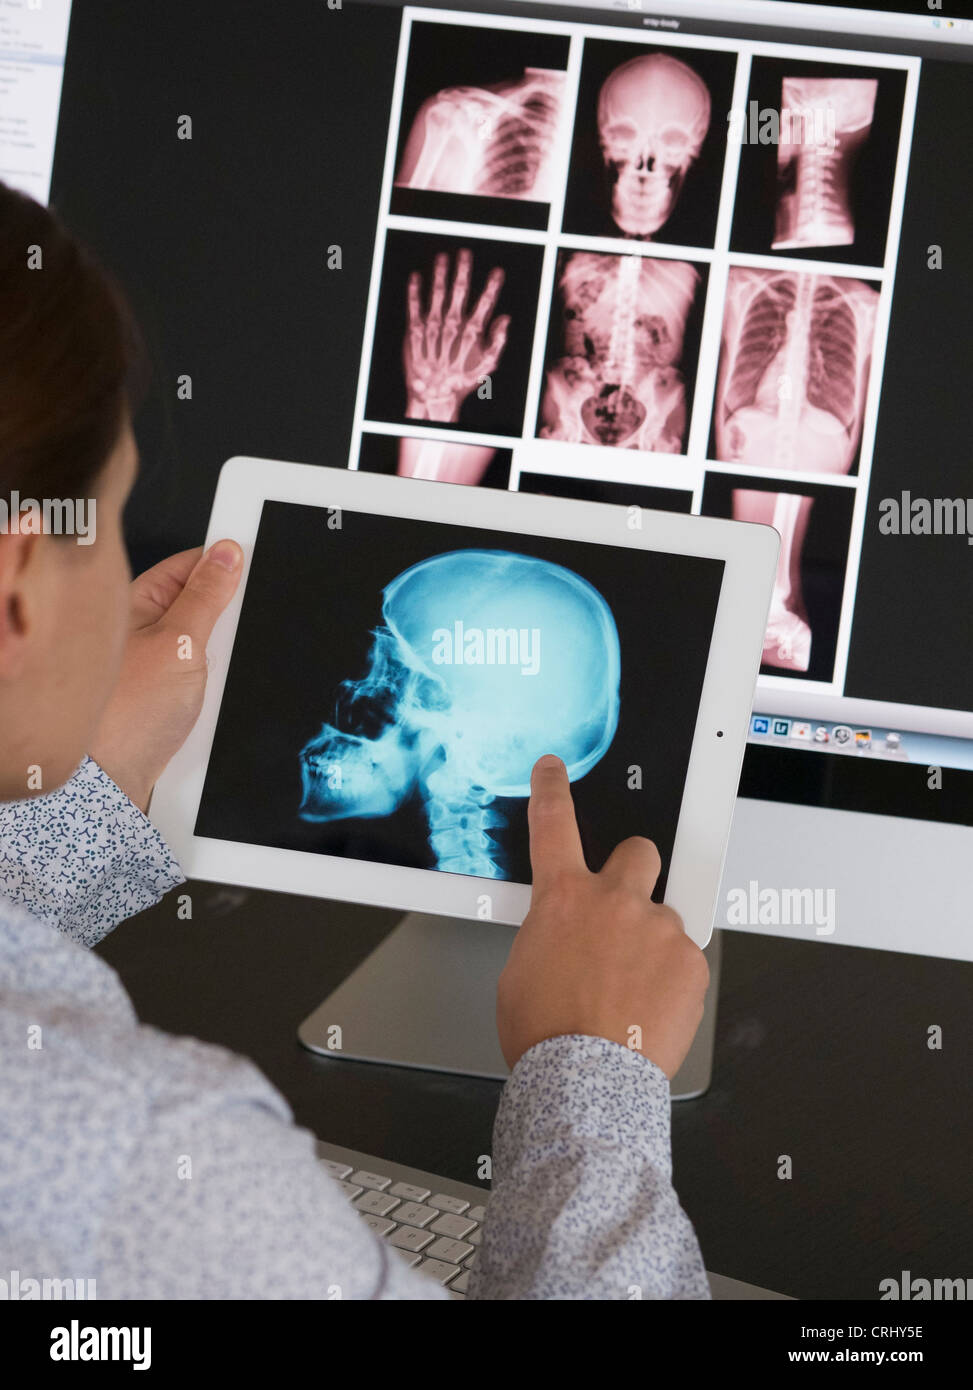 Doctor using iPad app to view xray images of patient - Stock Image